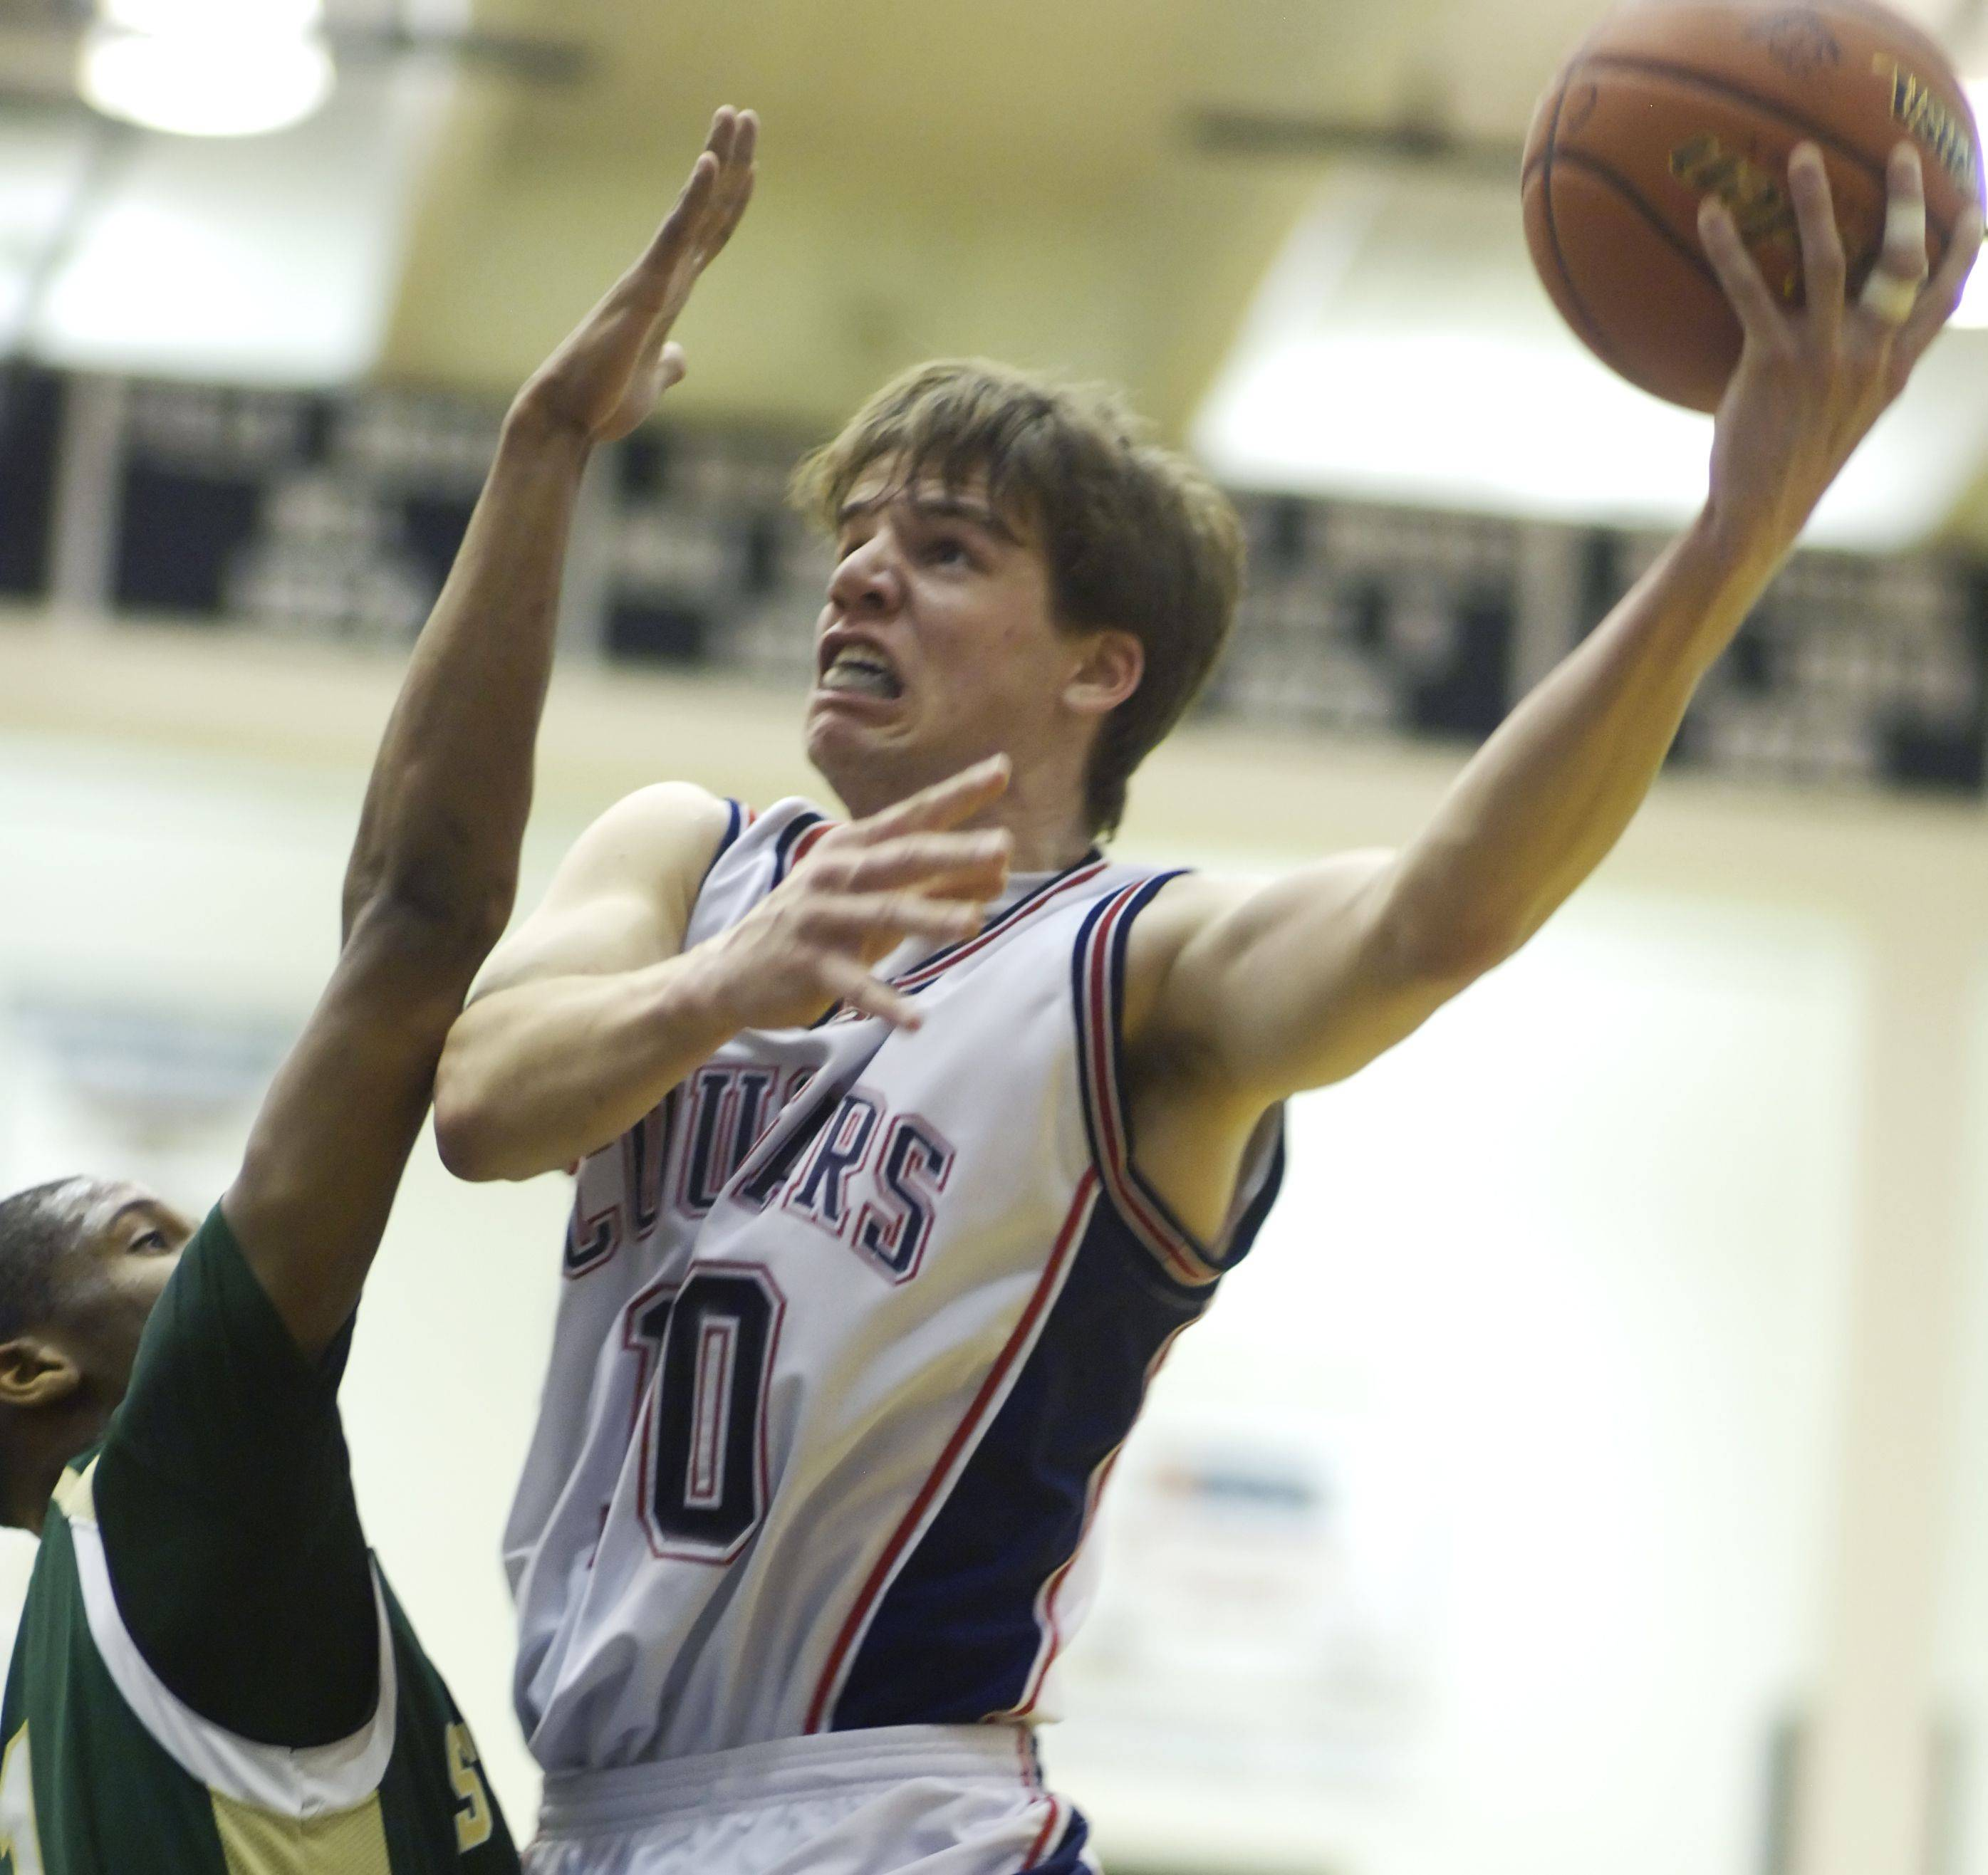 Conant's Brian Wadsworth, right, makes a strong move to the basket against St. Patrick's Royale Ewing.